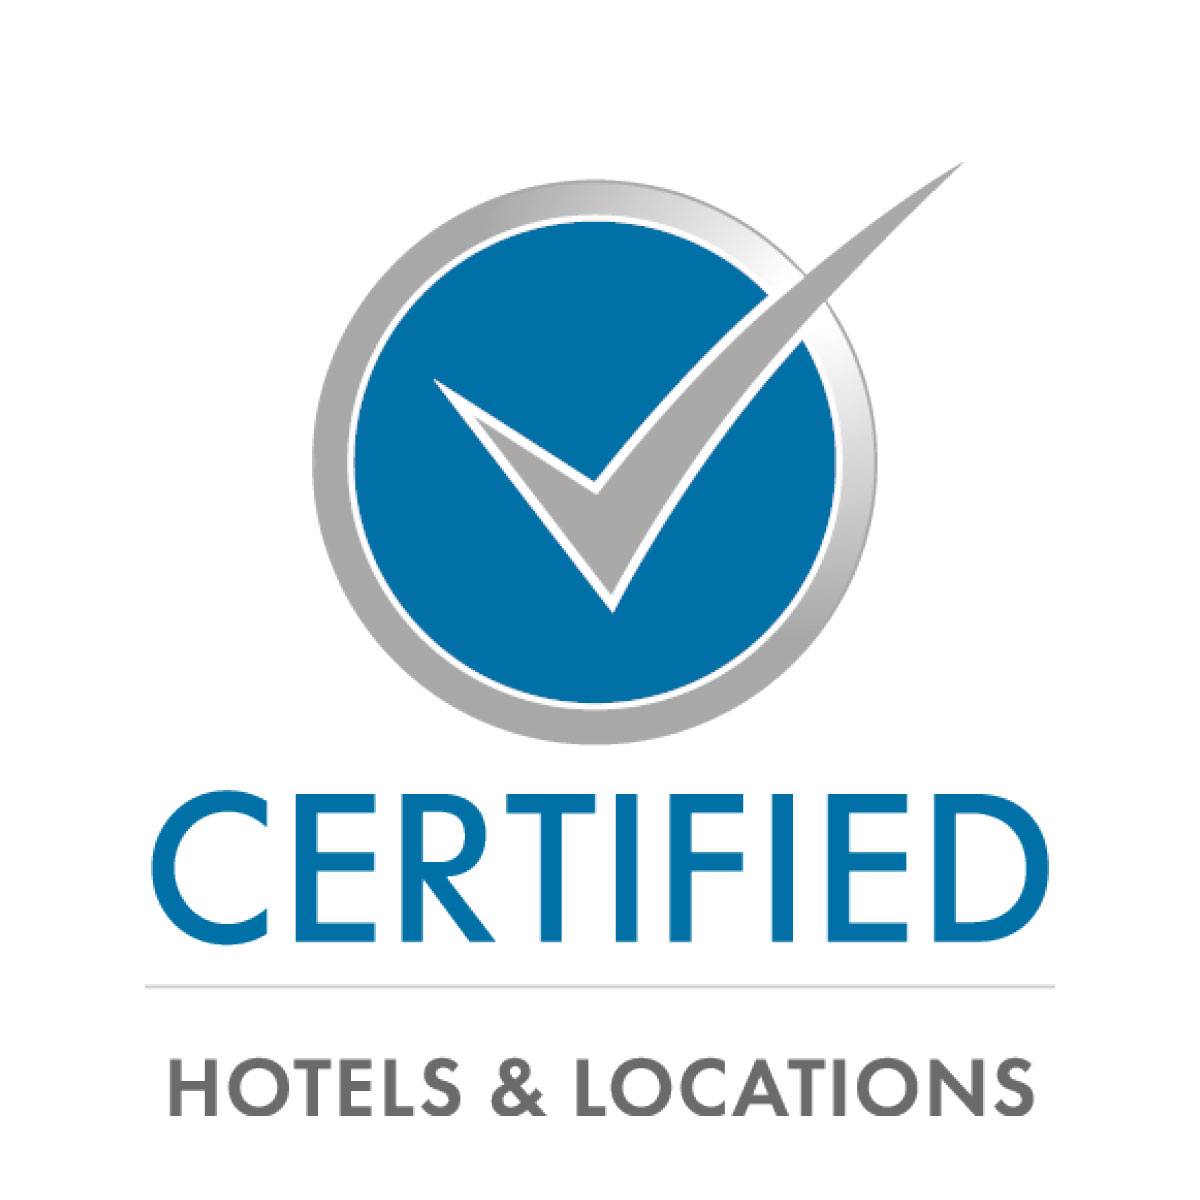 CERTIFIED Hotels & Locations –Altes Logo